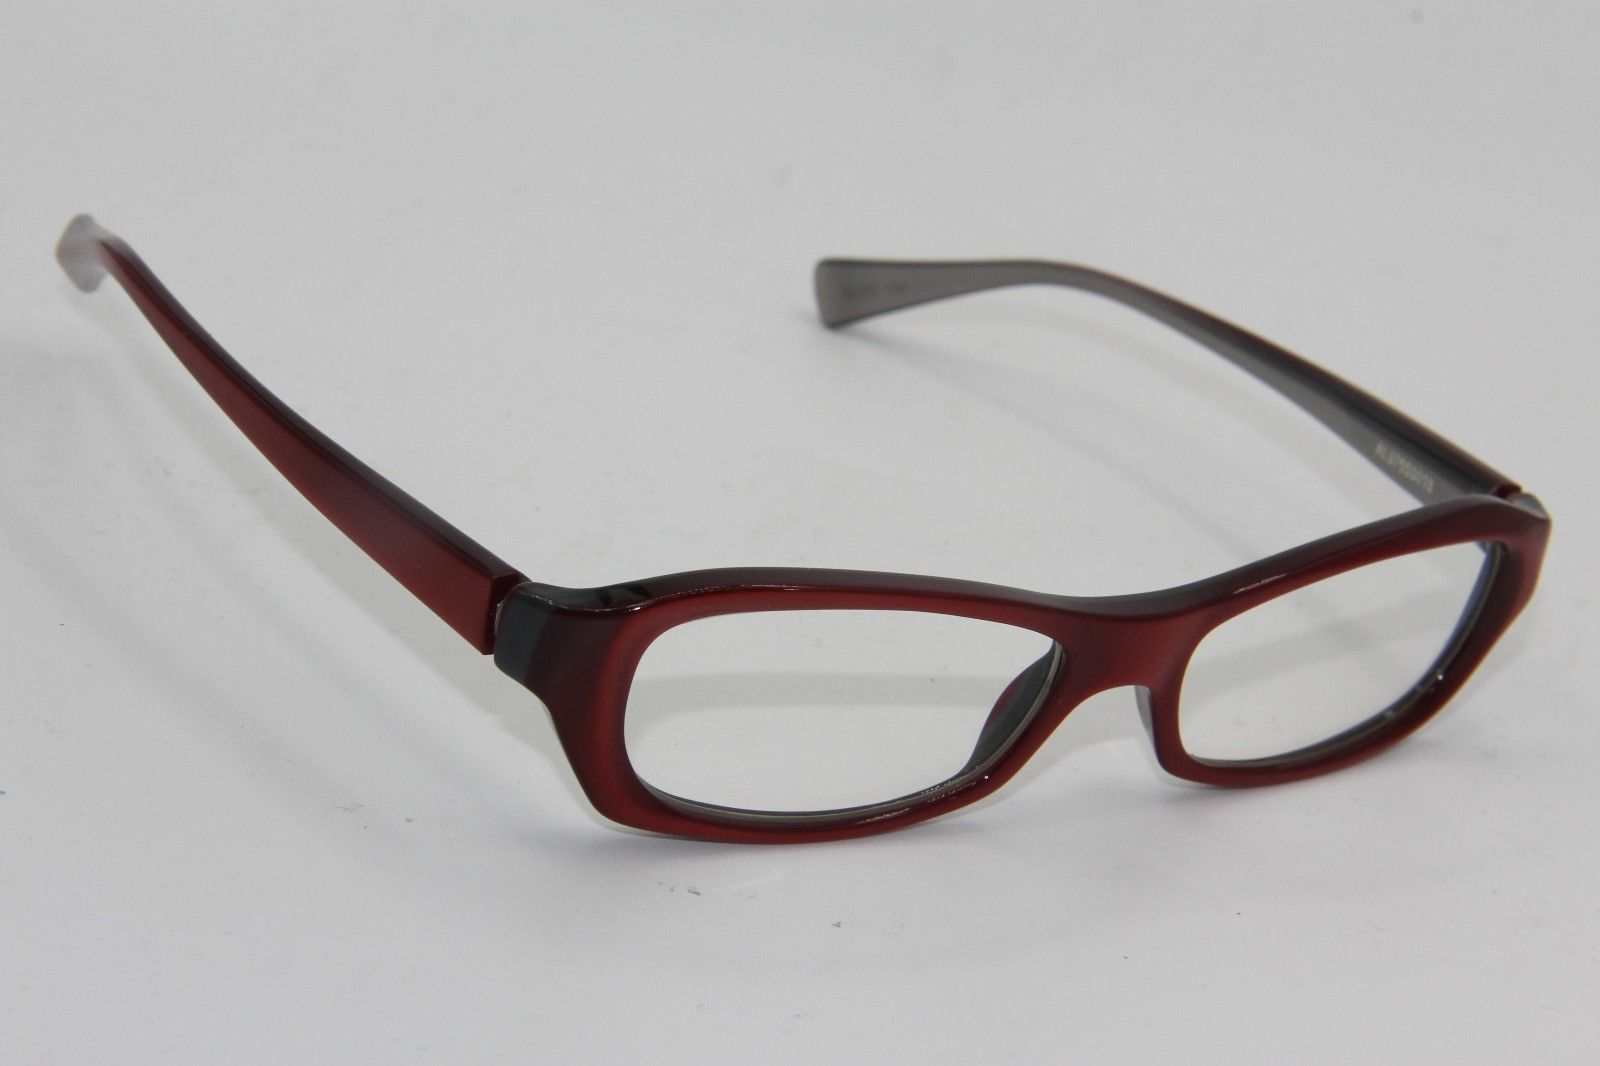 New Alain Mikli Al 0755 0018 Red Eyeglasses and 50 similar items eb8dfc4040c6